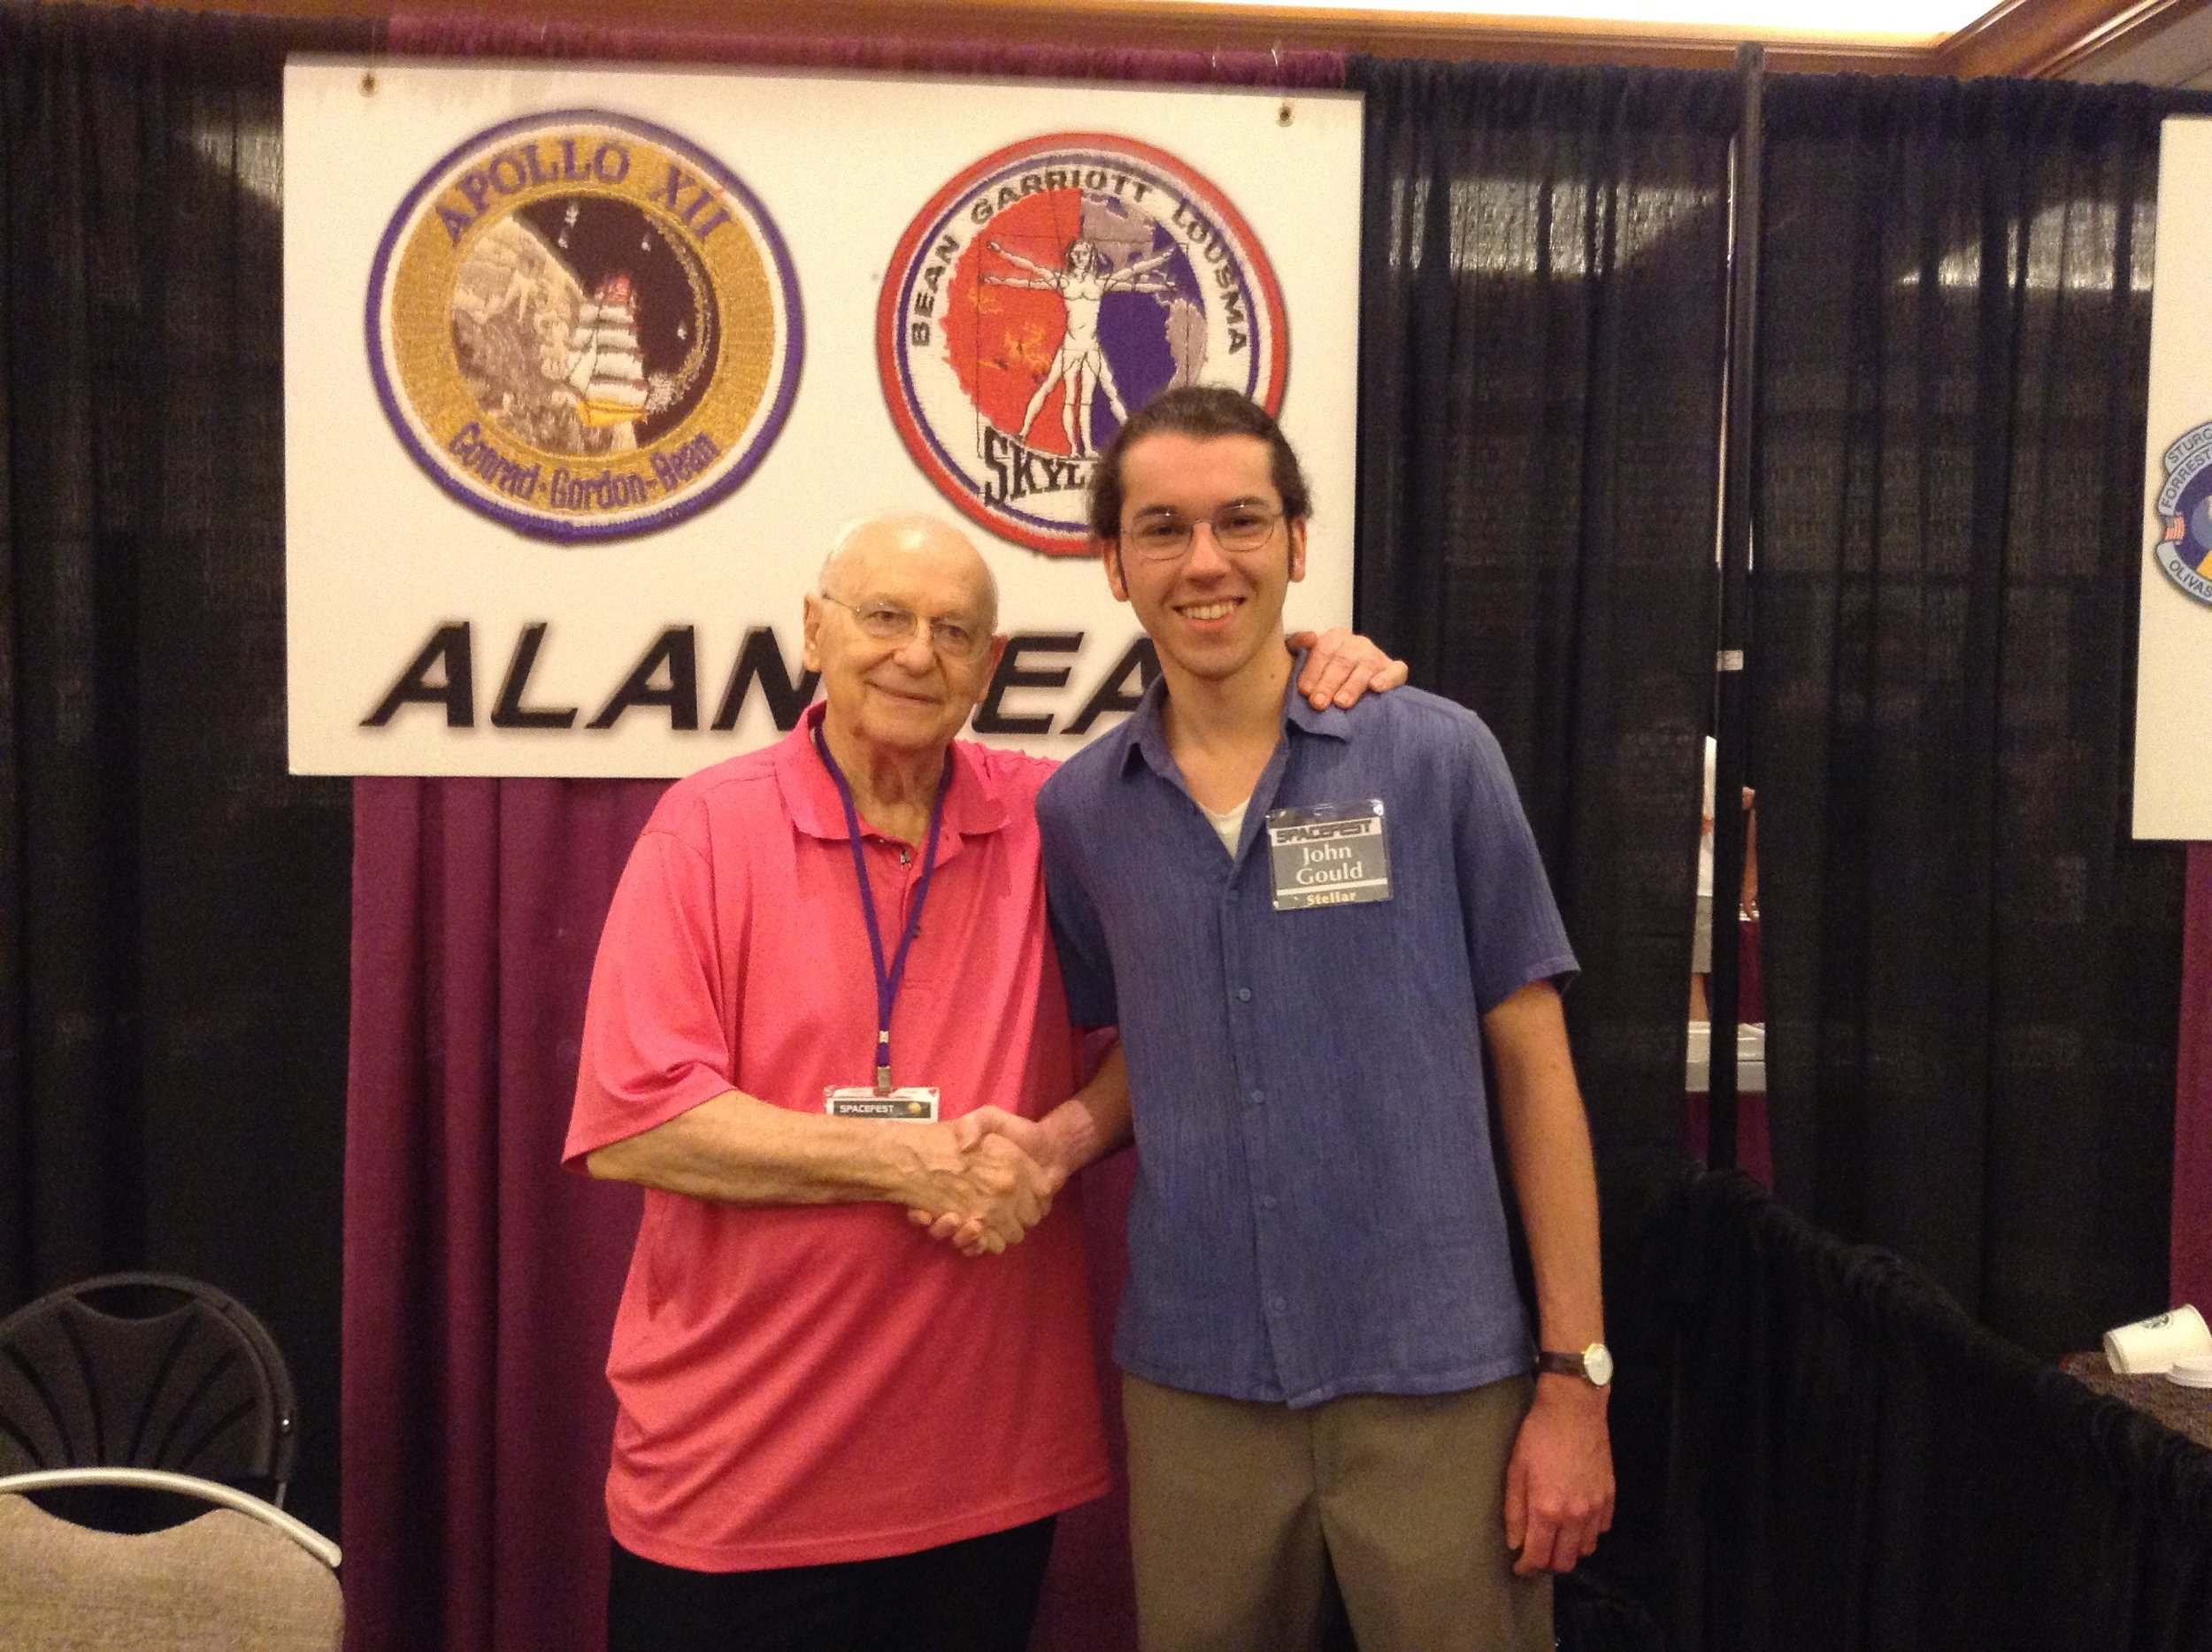 Alan Bean with the author, Spacefest VII, 2016.